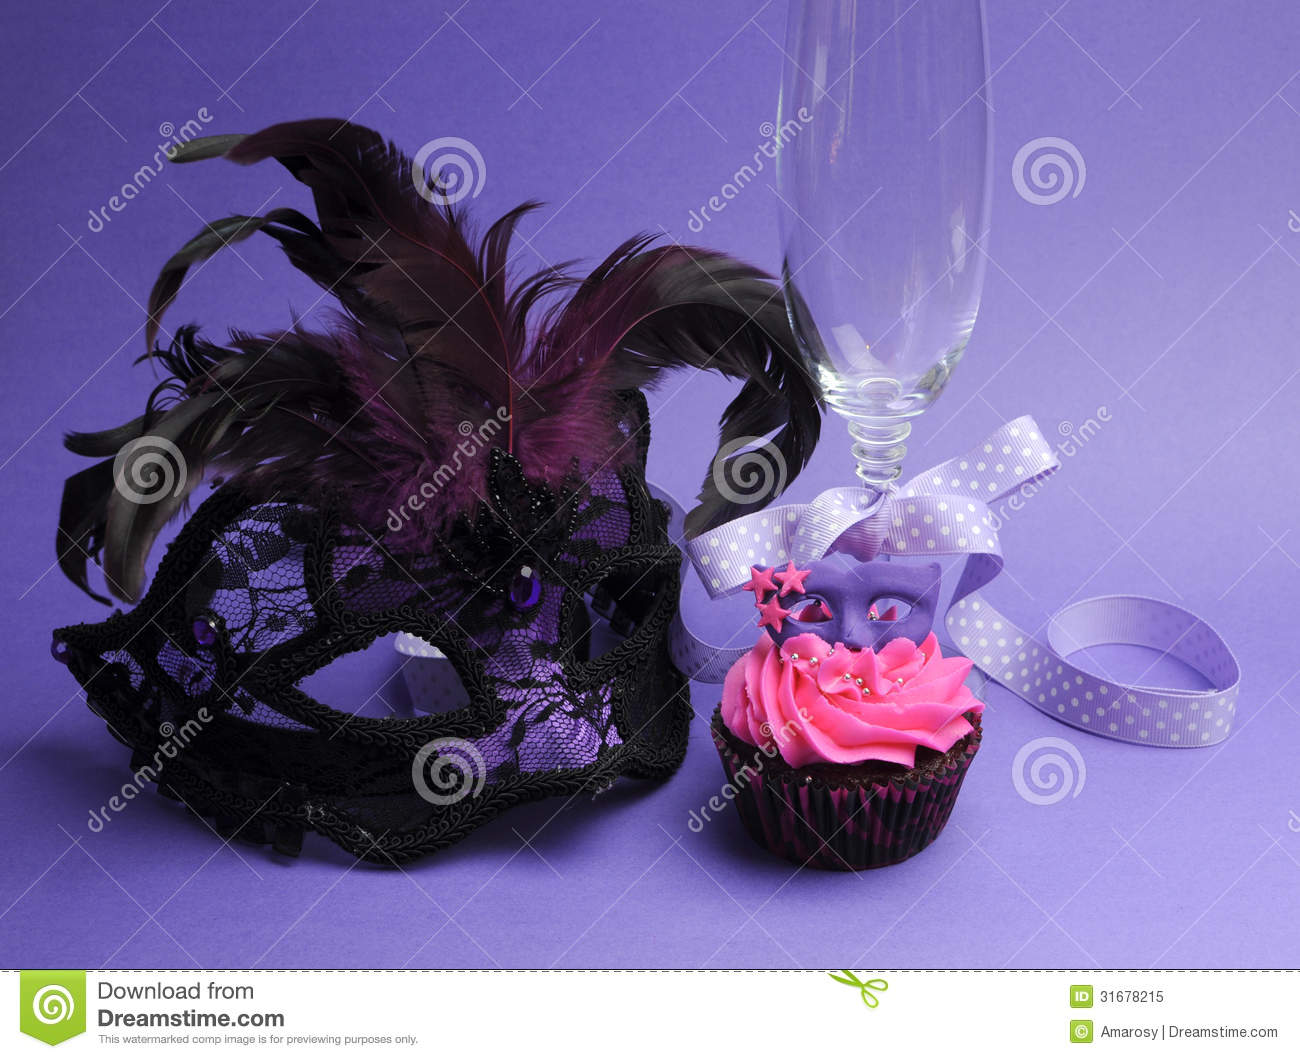 Purple Masquerade Party Decorations Stock Image - Image of ...